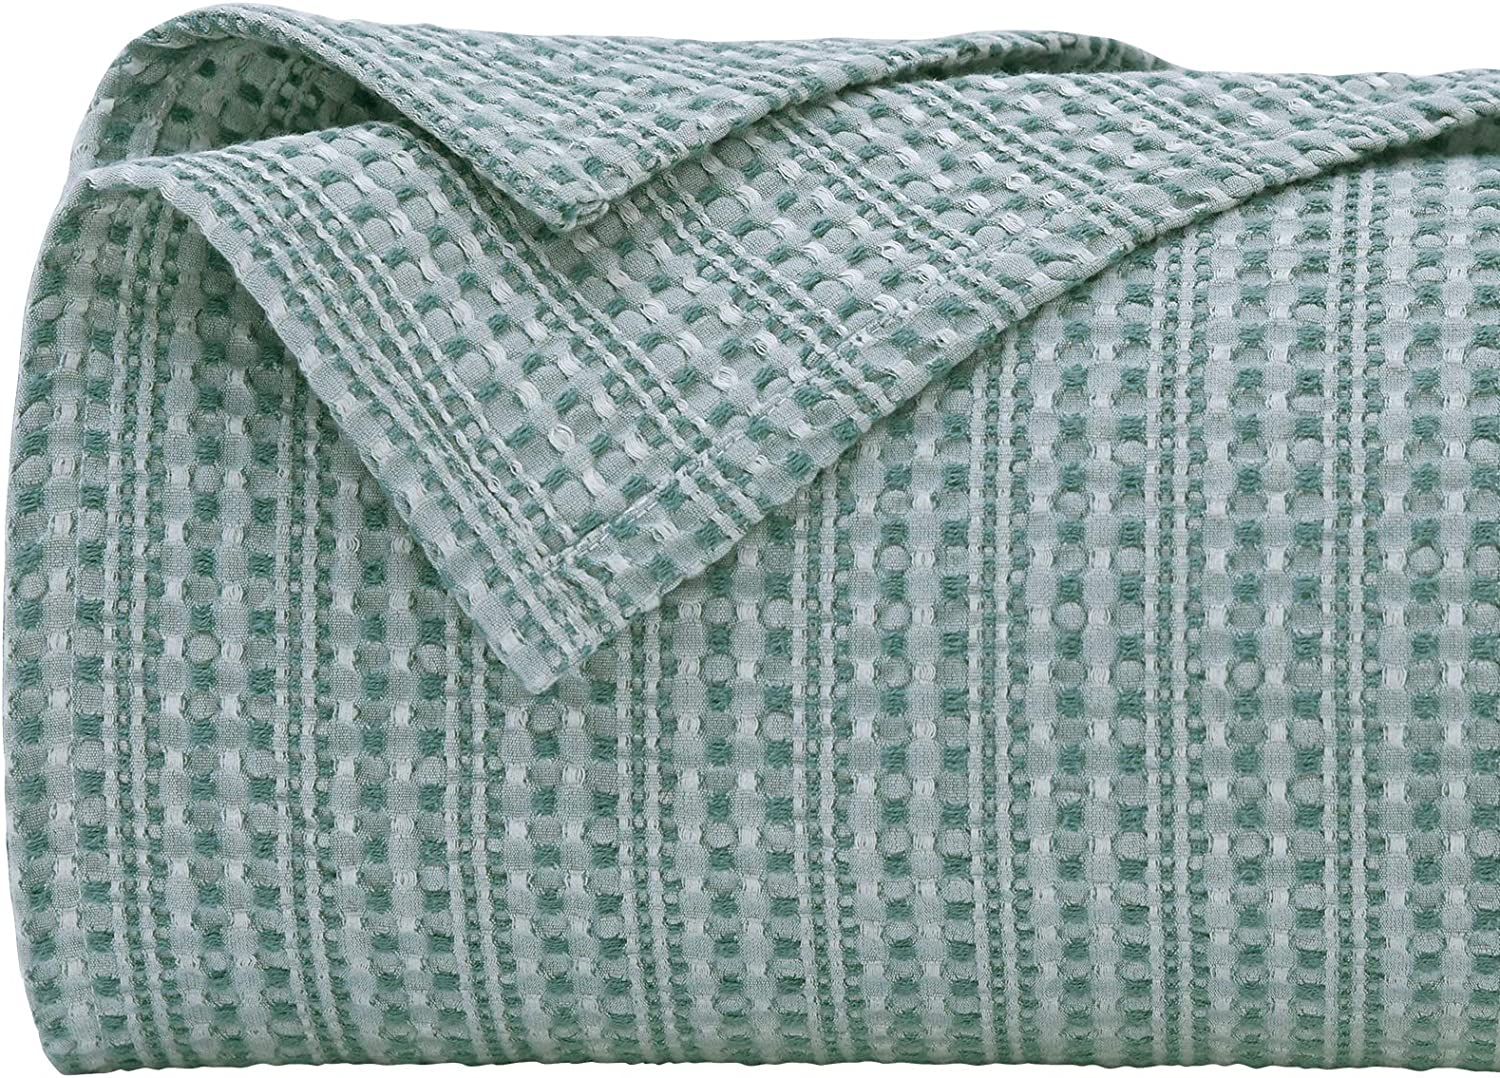 PHF 100% Cotton Cheap sale Waffle Blanket King Dyed Yarn New item Luxurious Size We